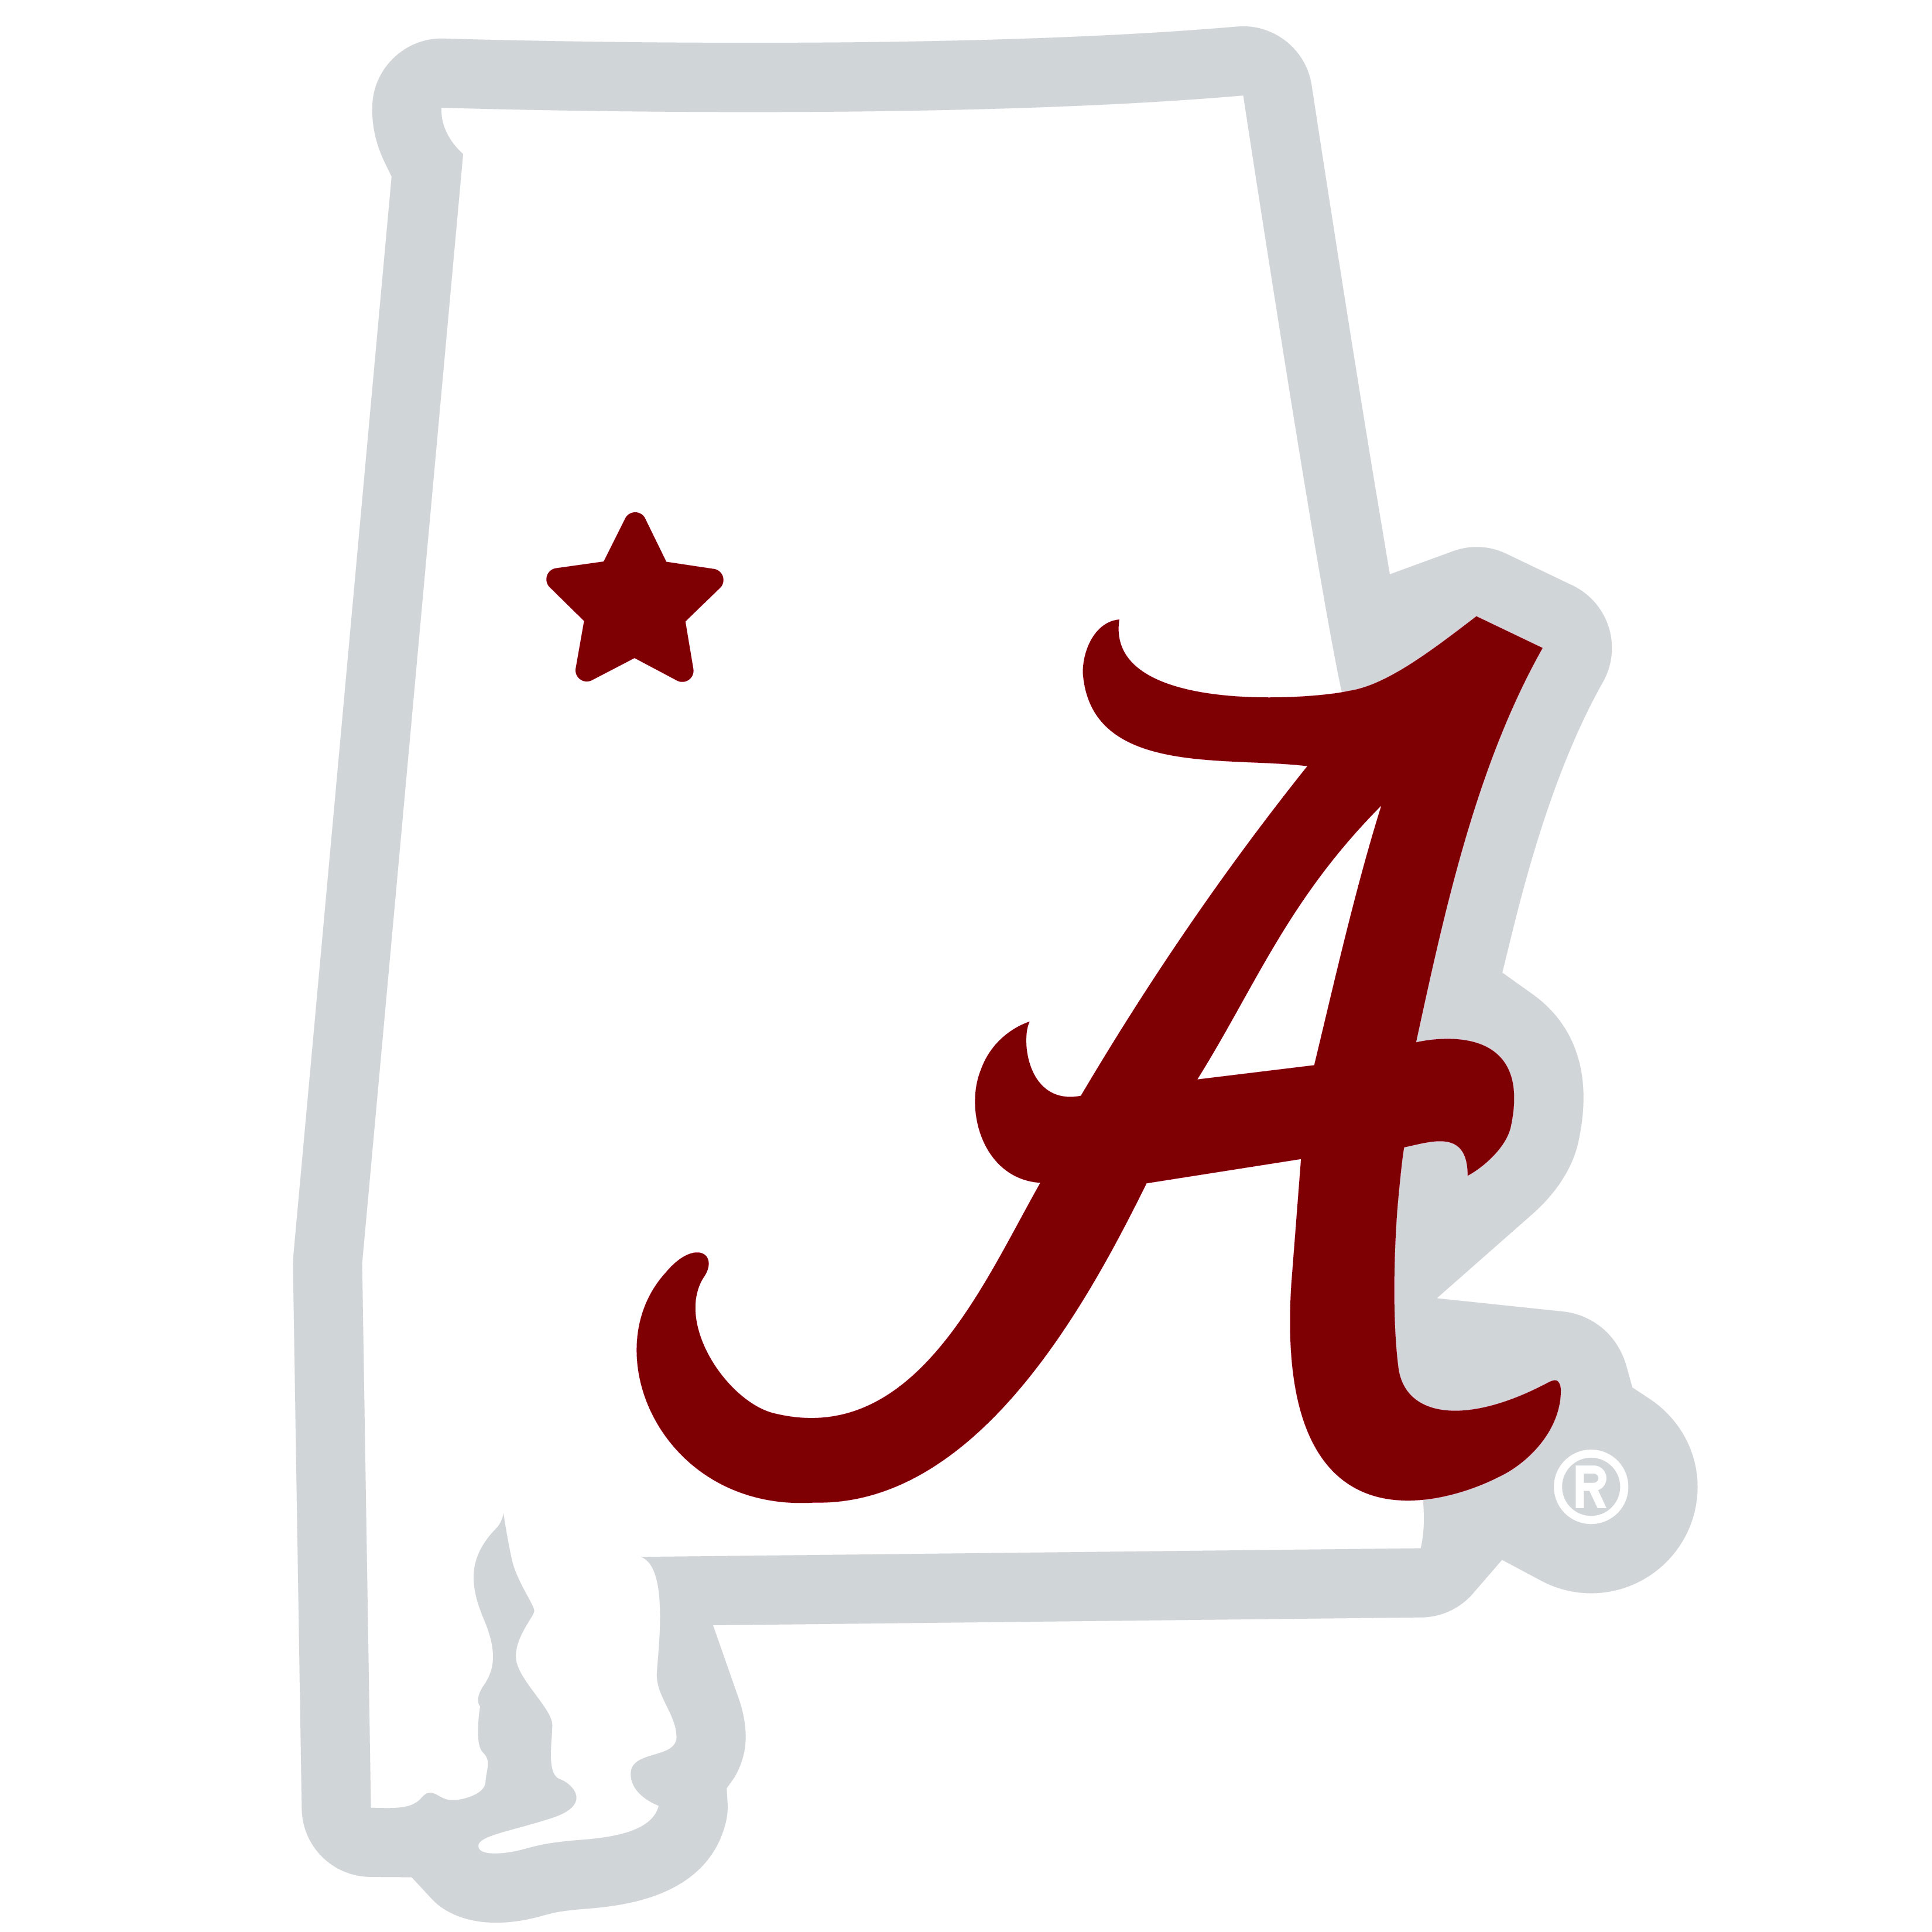 Alabama Crimson Tide Home State 11 Inch Magnet - Whether you are caravaning to the game or having a tailgate party make sure you car is wearing its fan gear with our extra large, 11 inch Alabama Crimson Tide home state magnets. These striking magnets can be easily placed on for game day and removed without he residue left by decals. The design features a bright state outline with the location of the team highlighted with a football and a large team logo.